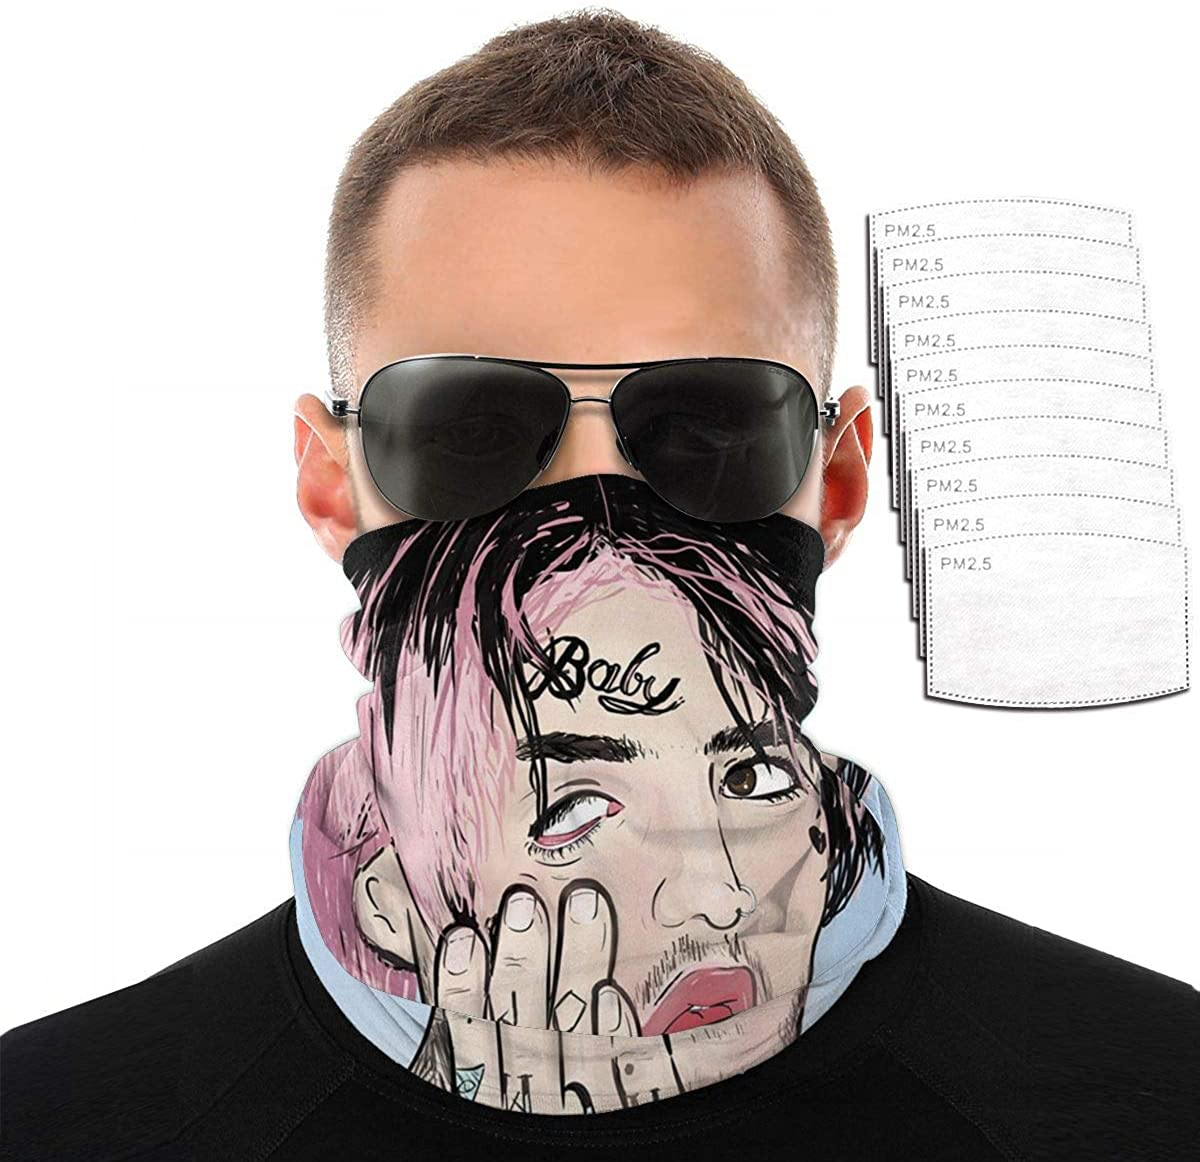 Lil Peep Scarf Bandanas Neck Gaiter With Safety Carbon Filters